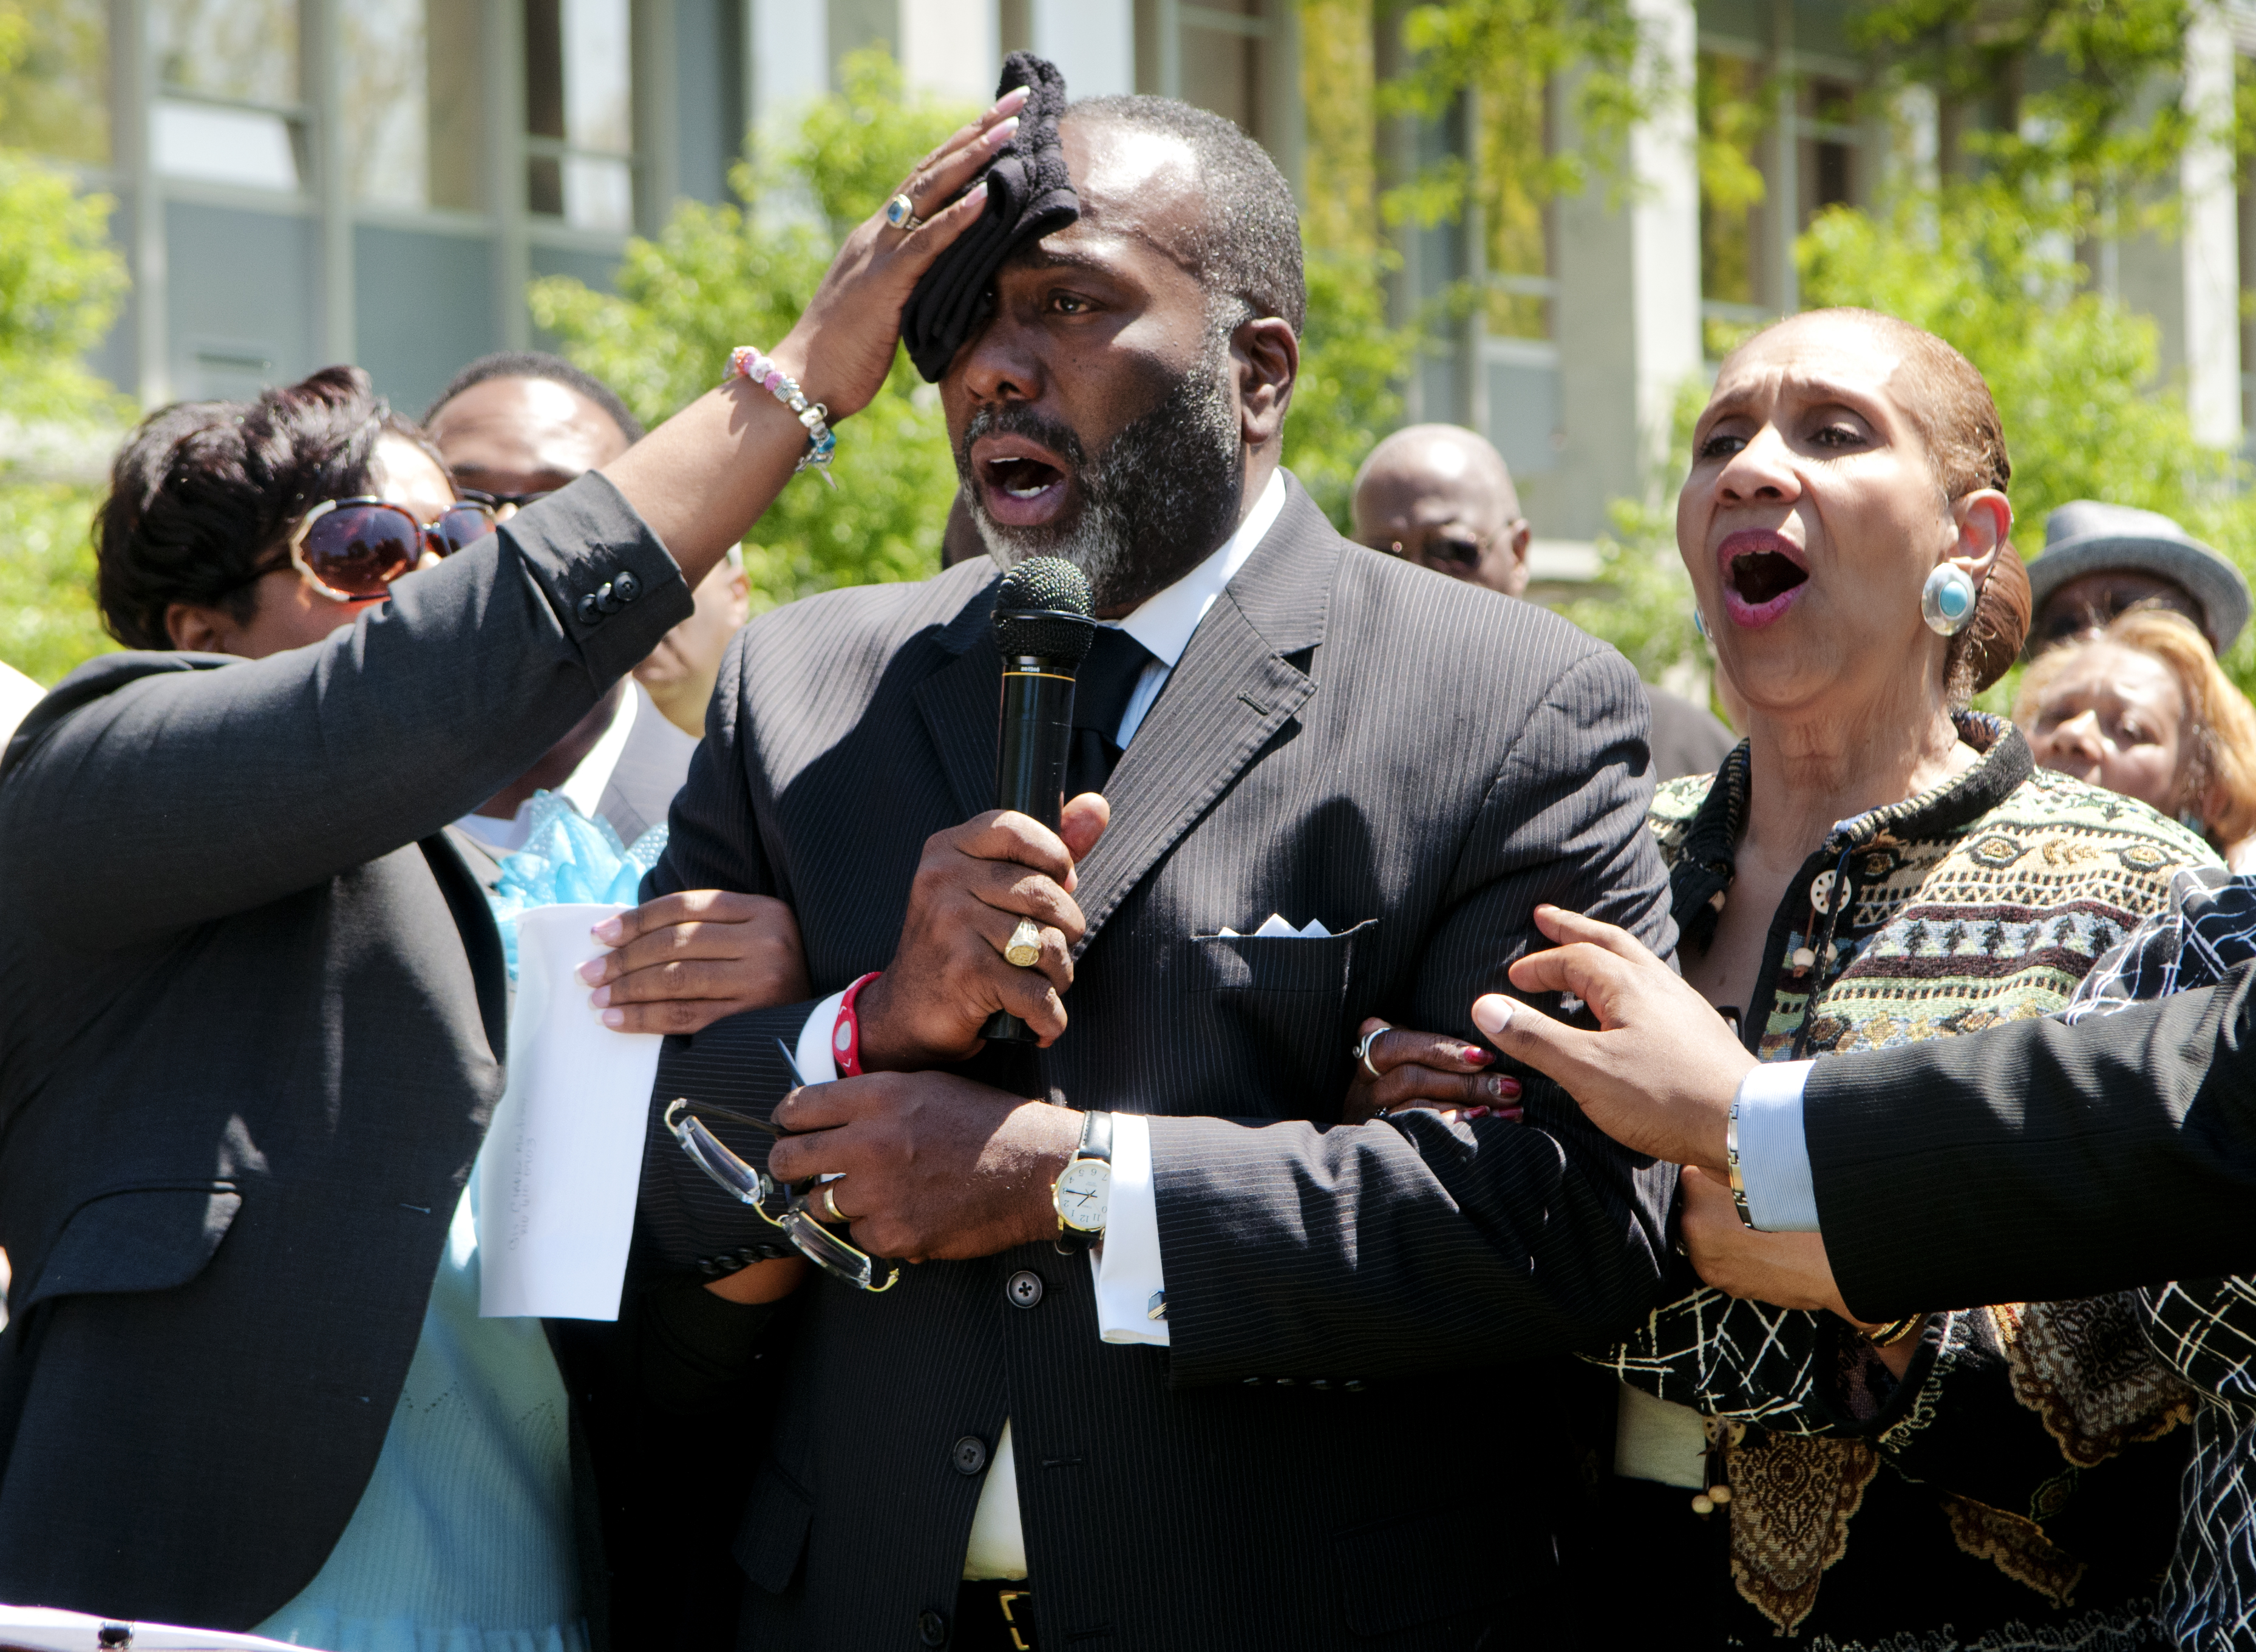 """Delores Flynn wipes the forehead of her husband, Rev. Reginald Flynn, as he leads a crowd gathered on the front lawn of City Hall in Flint, Mich., in singing """"We Shall Overcome"""" at the end of a rally against Public Act 4, May 14, 2012. (Ryan Garza/Flint Journal via AP)"""